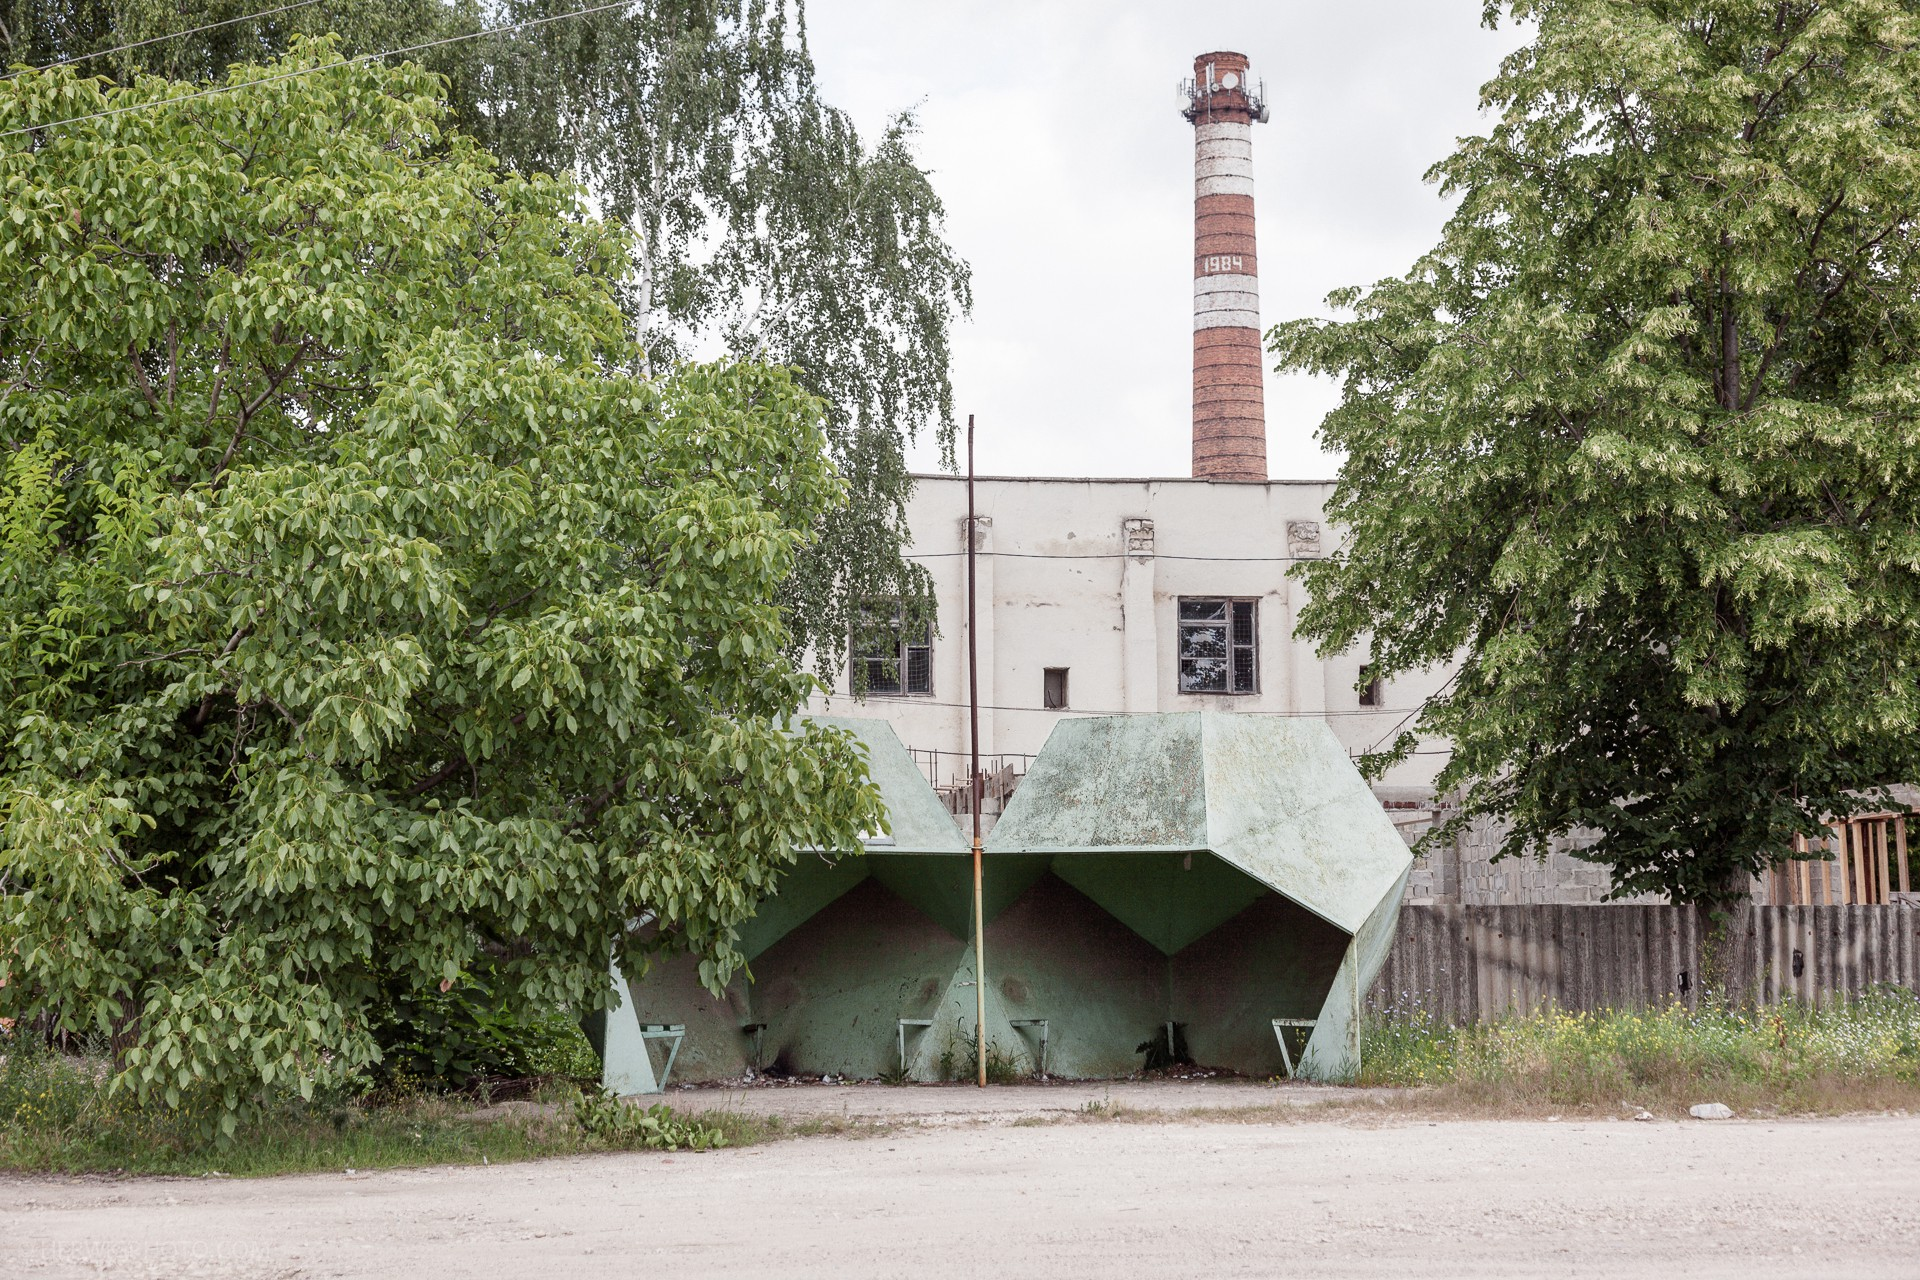 Crazy and Daring, These Concrete Soviet Bus Stops are Tributes to their Unknown Designers